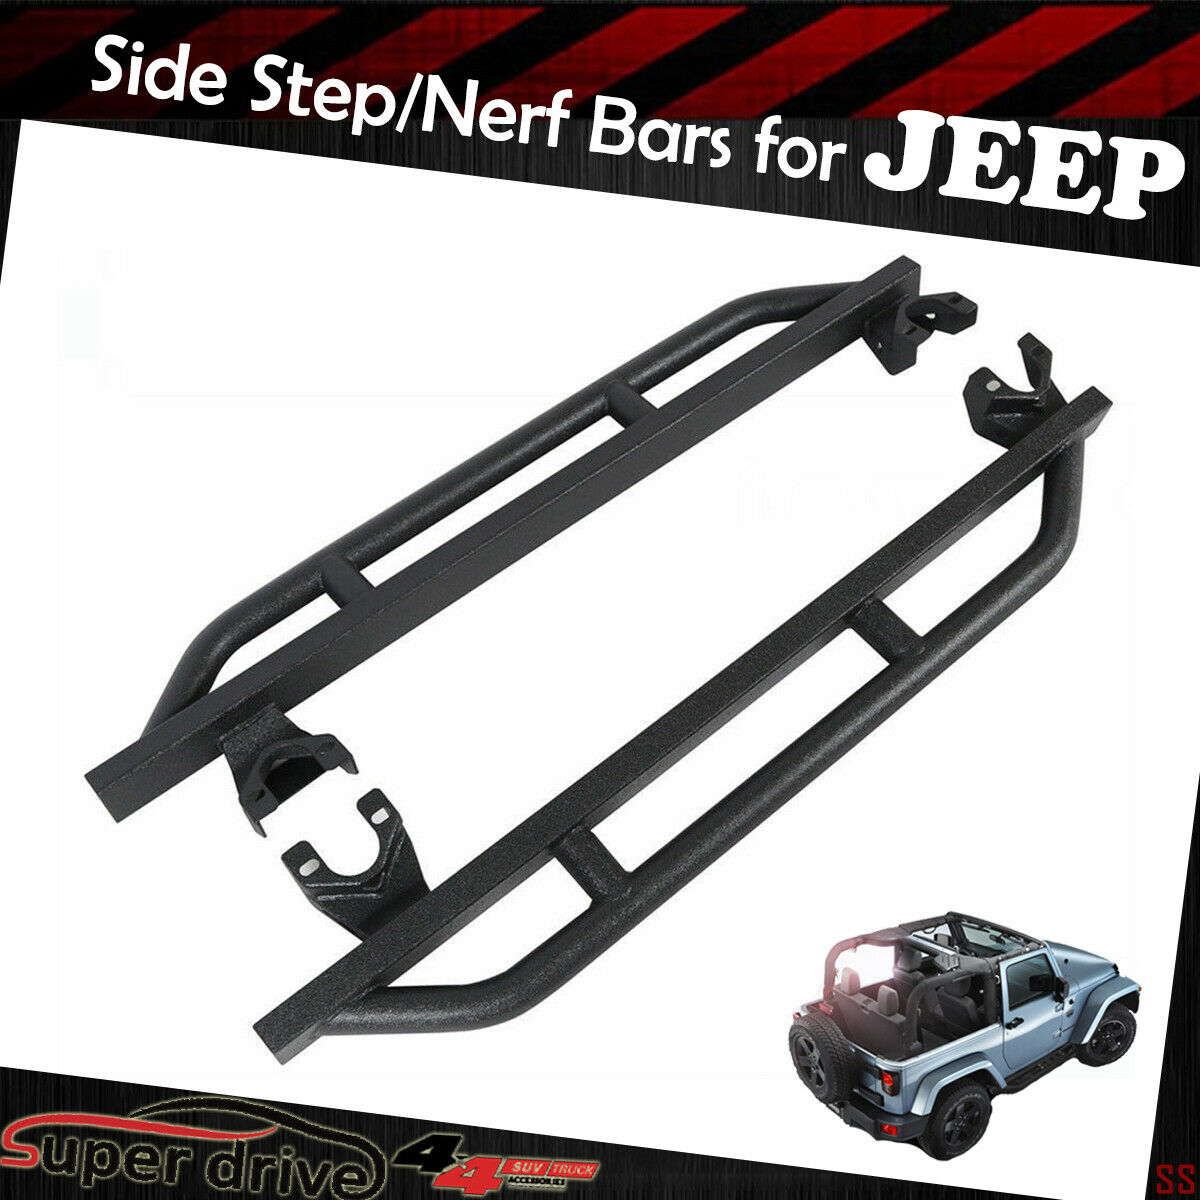 Fit 2018-2019 Jeep Wrangler JL New Body BLK Textured Armor